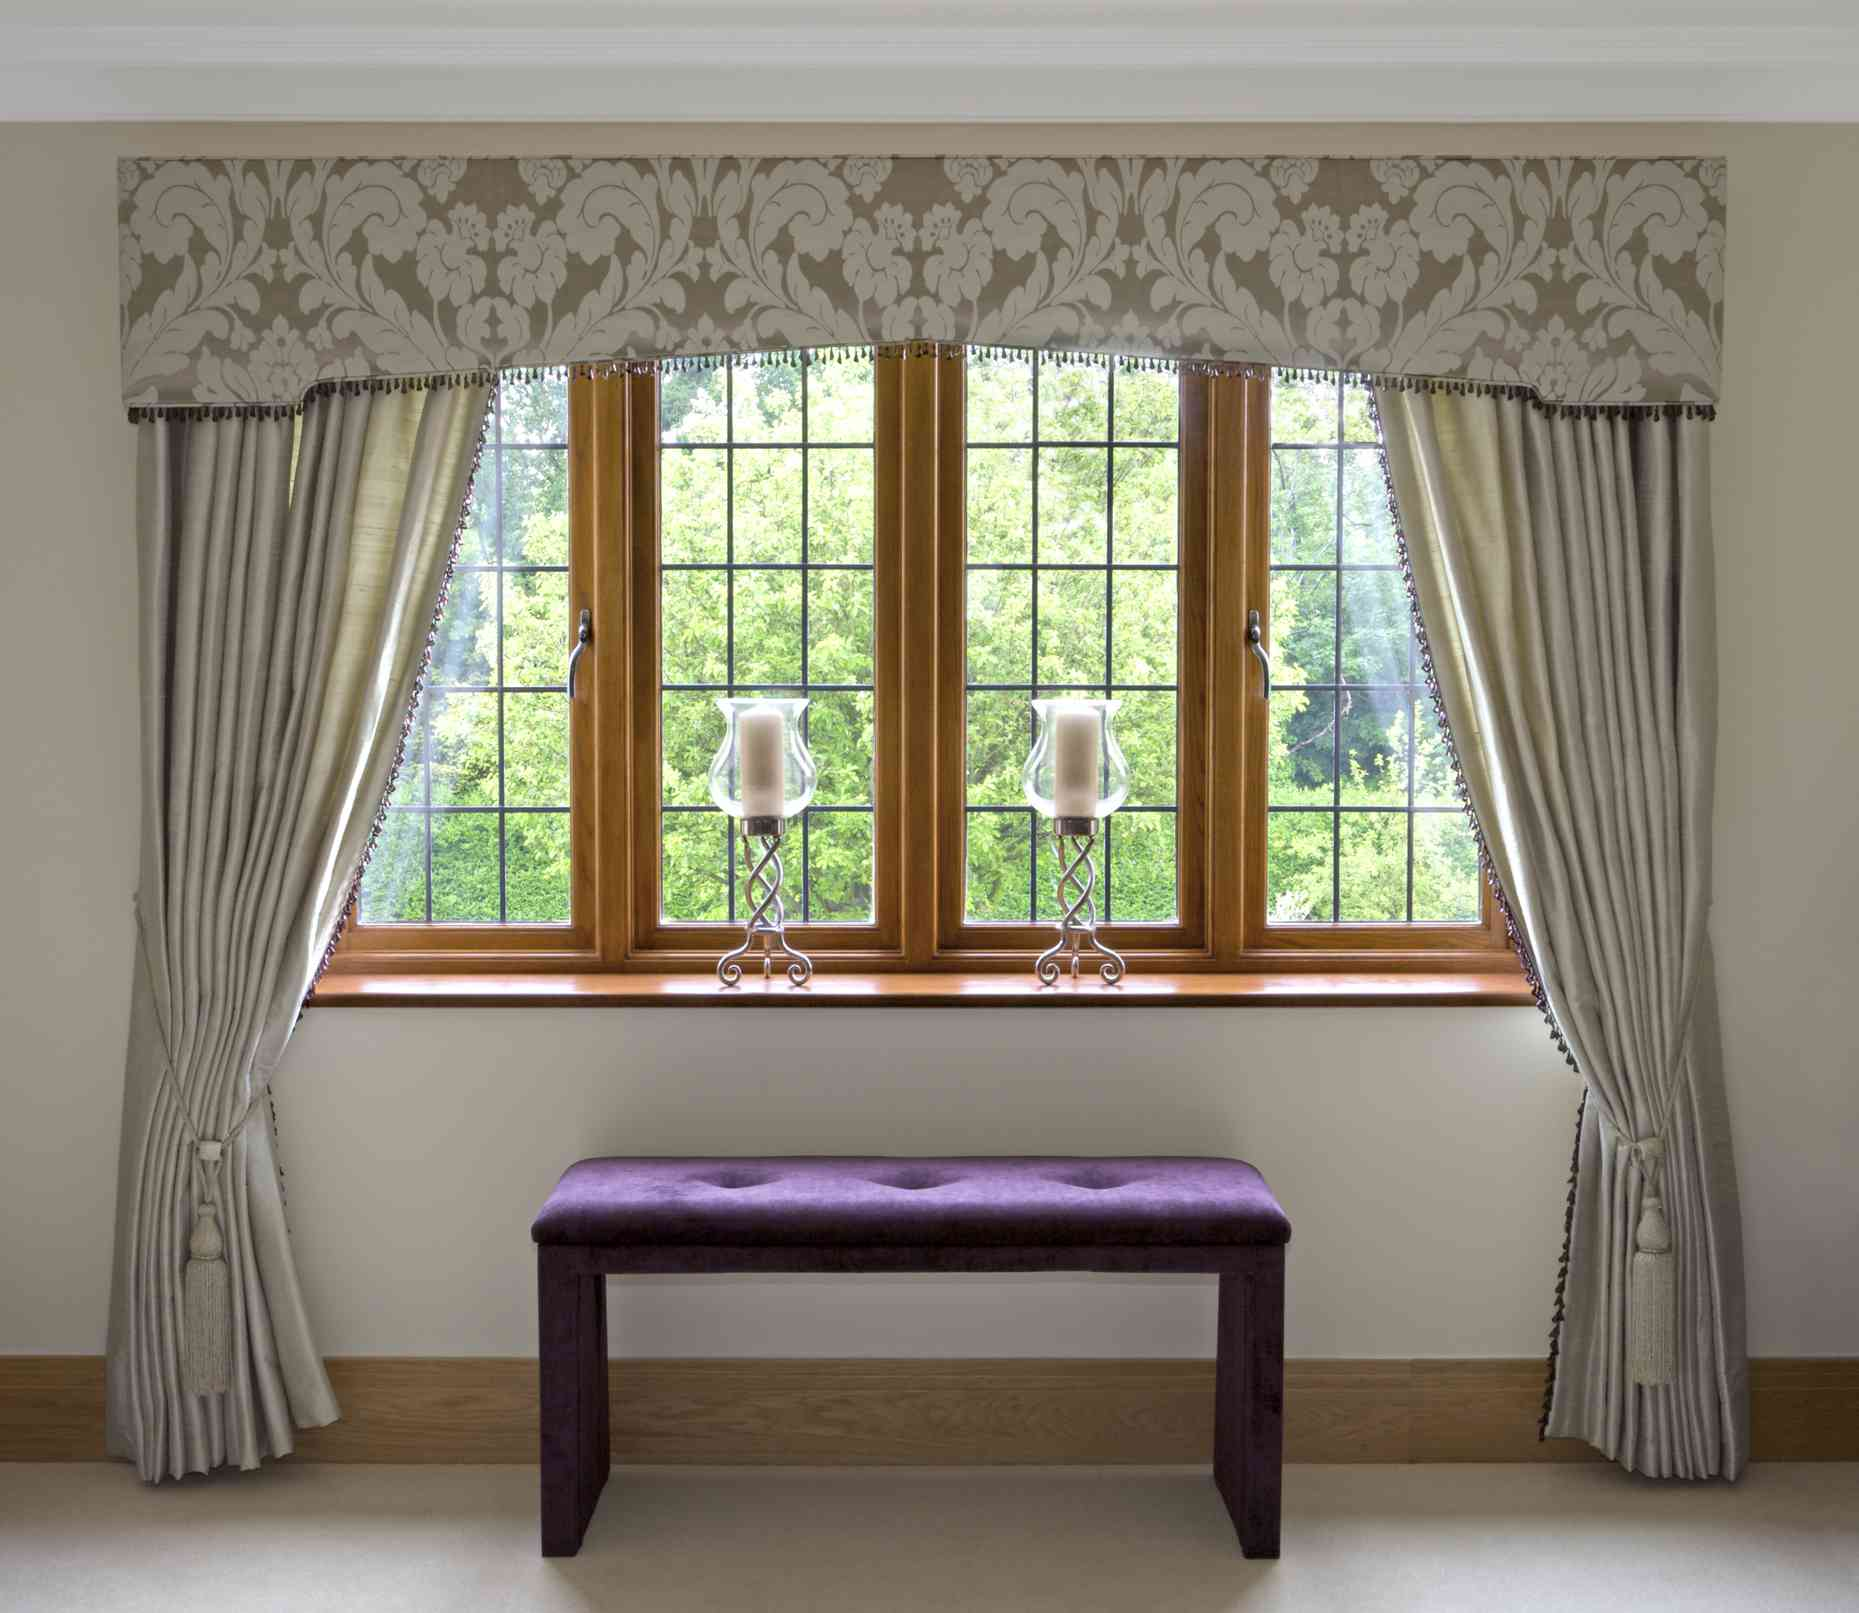 window valances bedding with valance multi treatments zi home spice drapes c dillards curtains